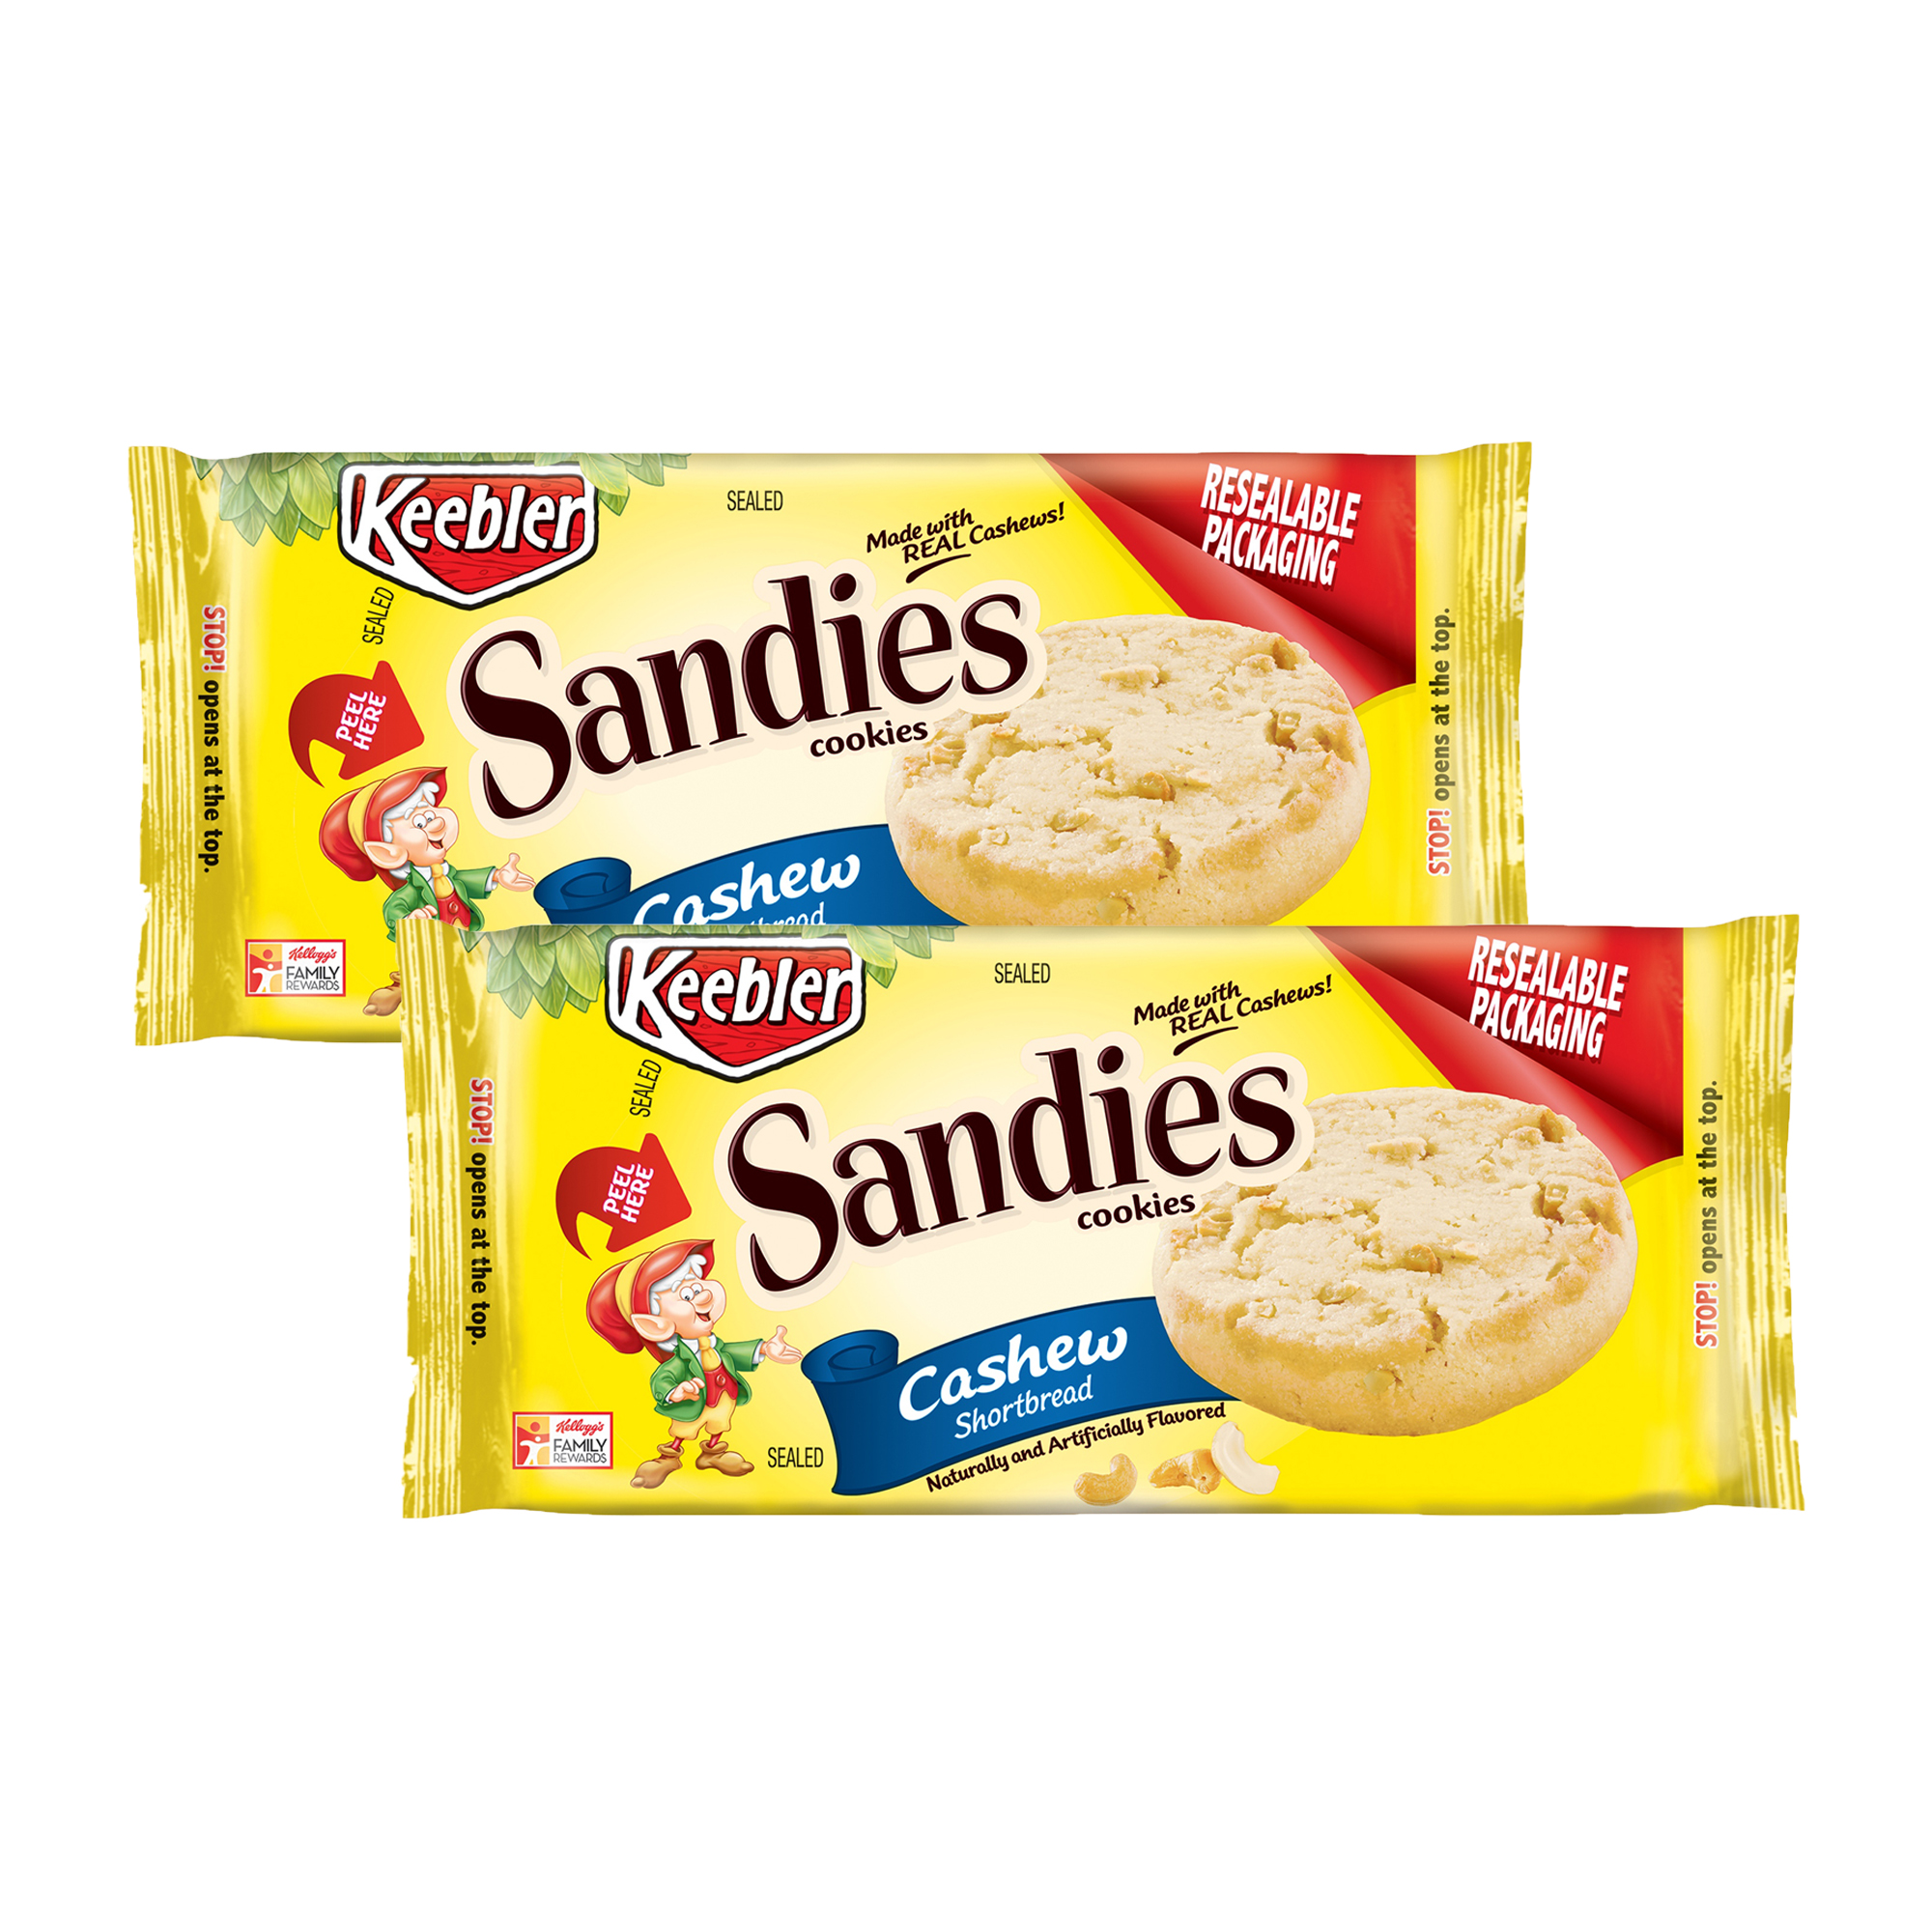 Keebler™ Sandies® Cashew Shortbread Cookies 11.2 oz. Tray